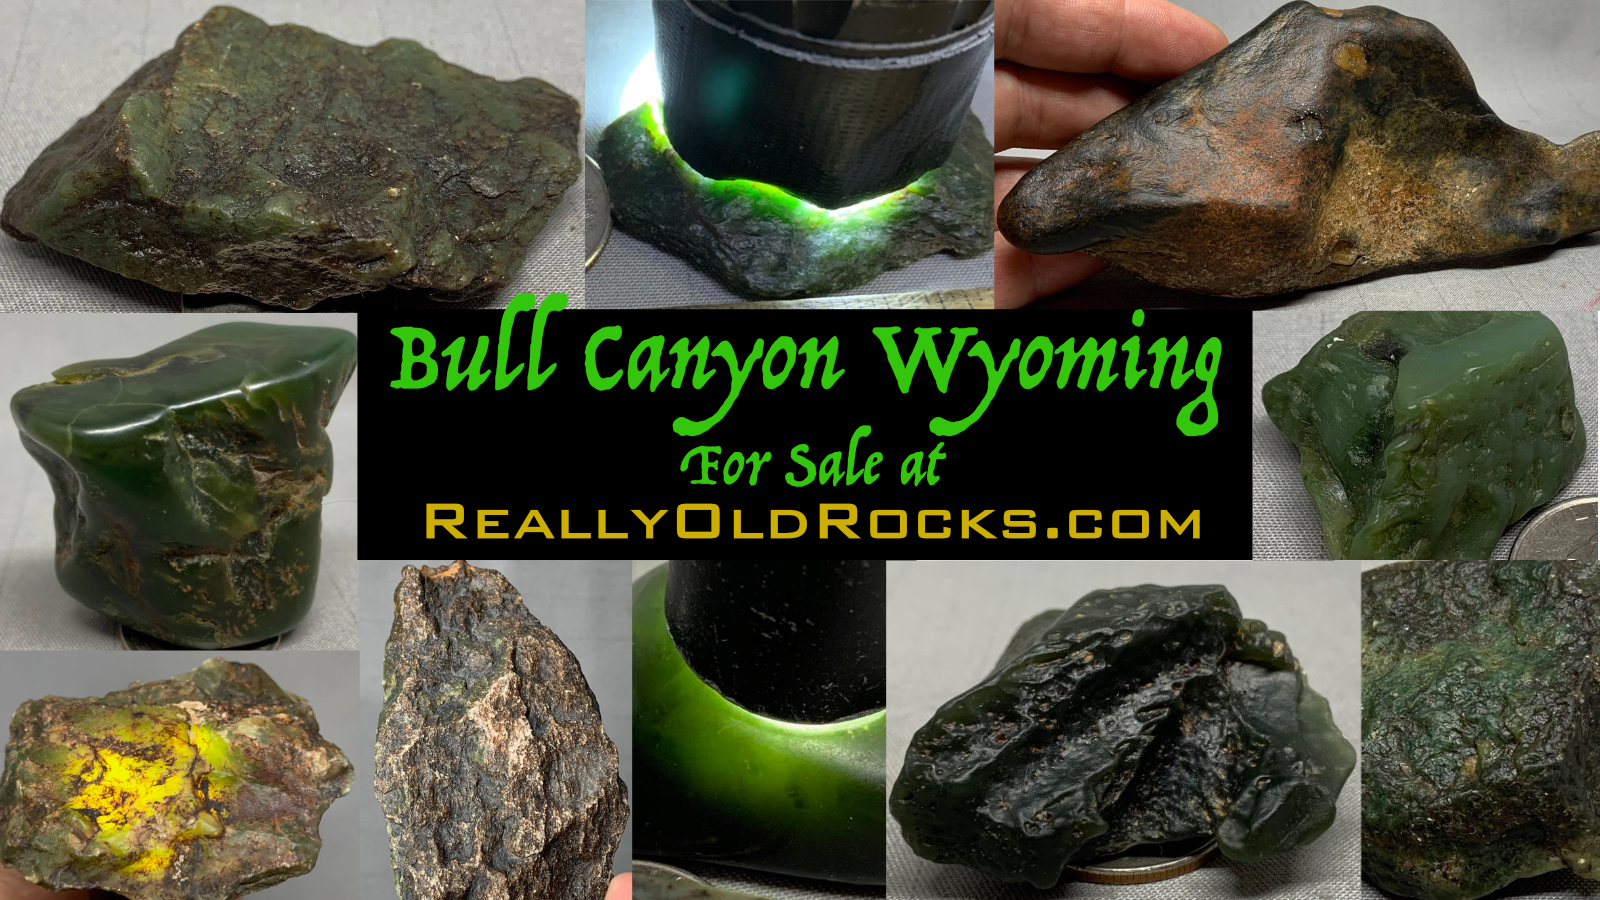 Bull Canyon Wyoming Jade for Sale